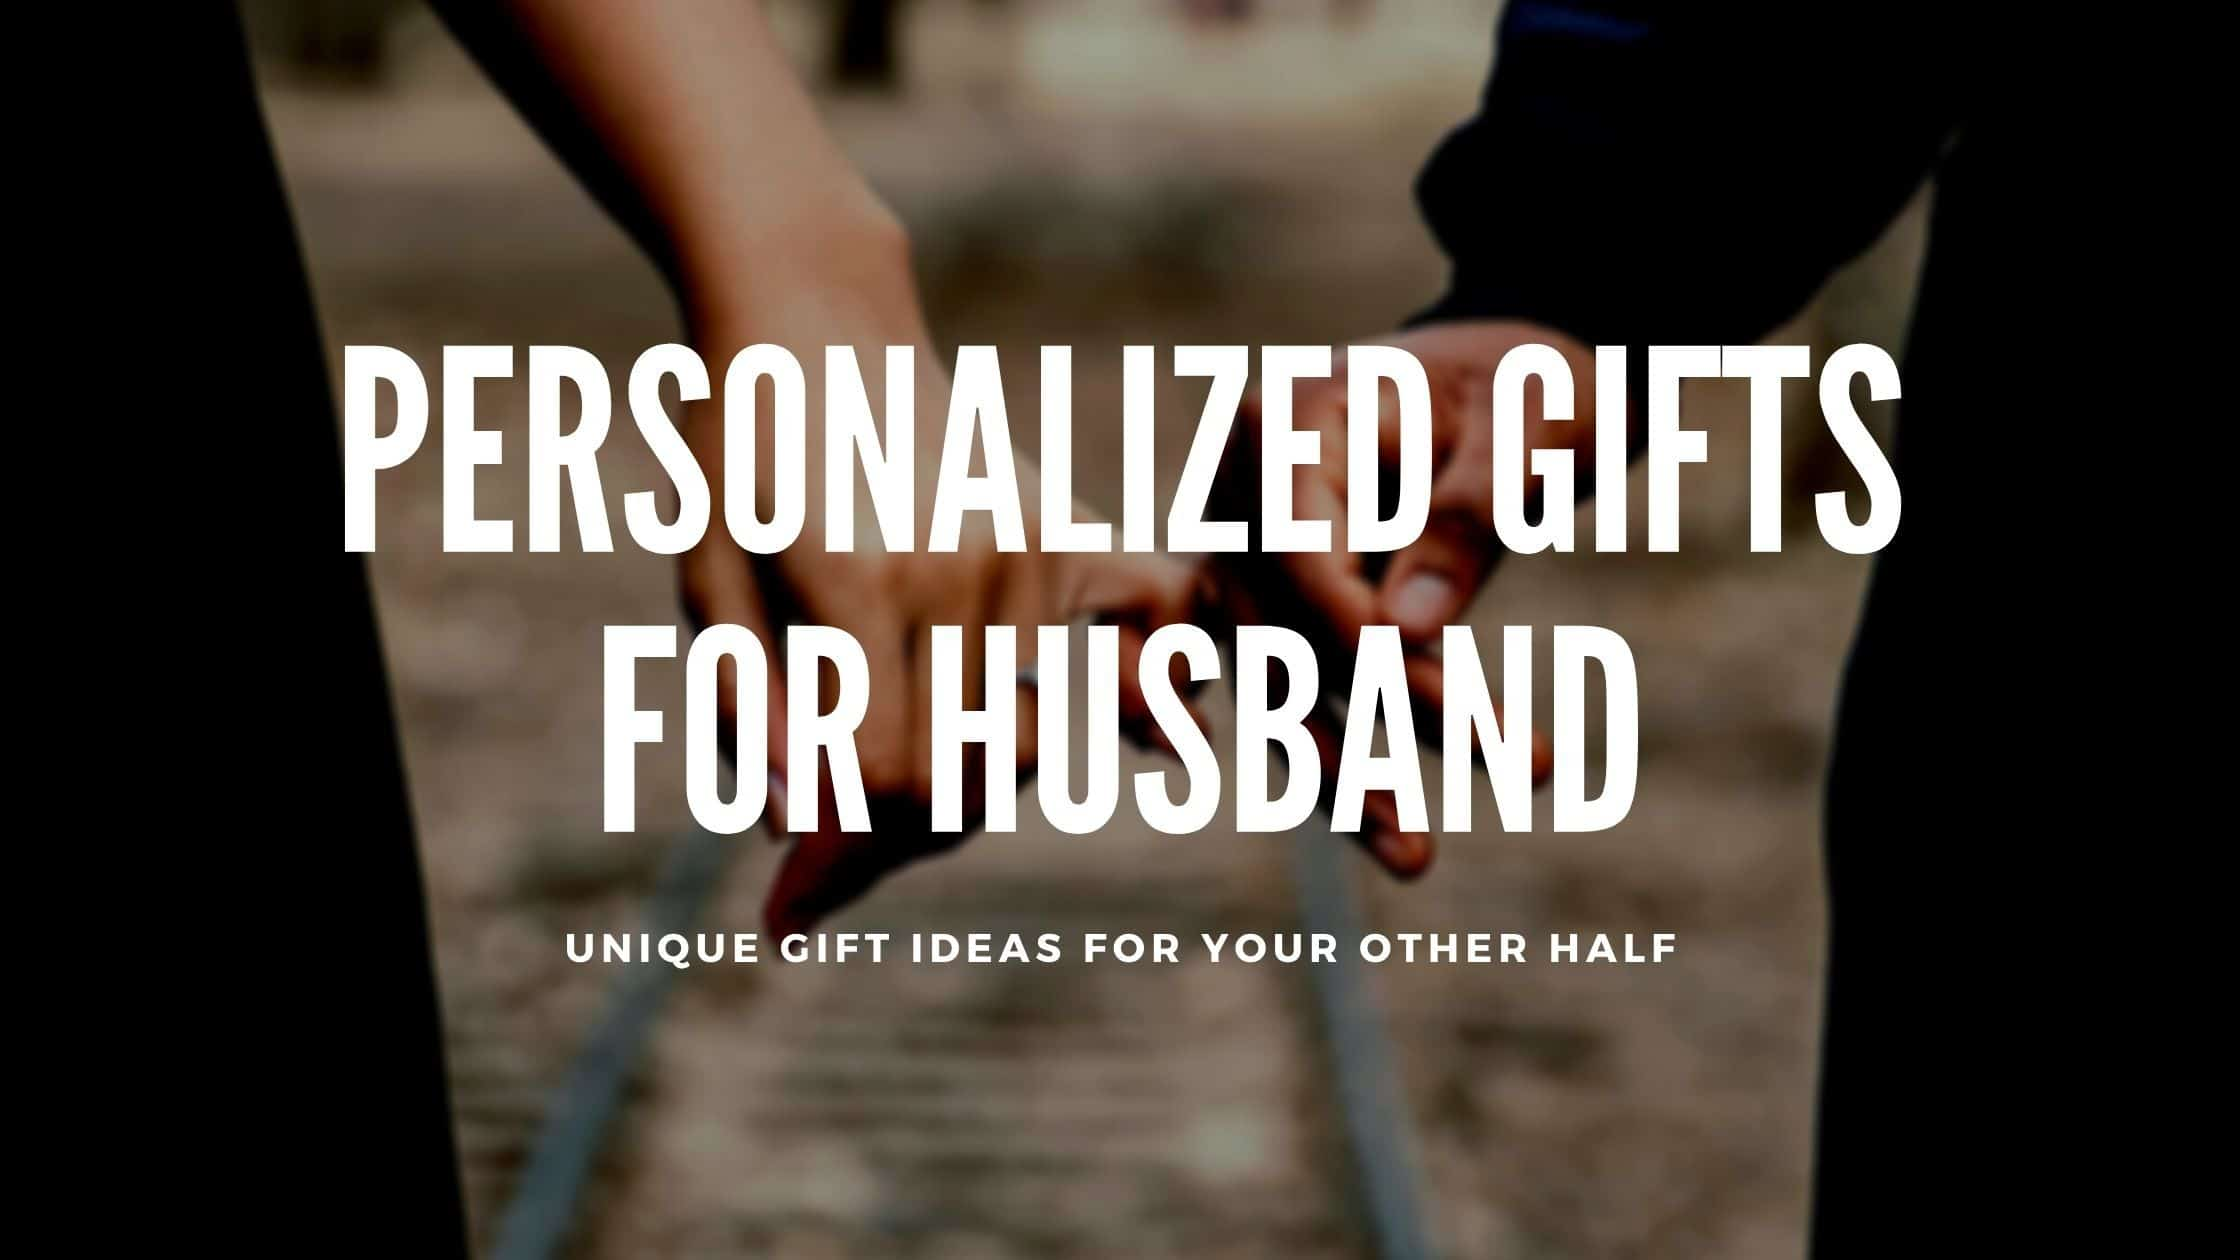 25+ Awesome Personalized Gift Ideas for Your Husband (2021)